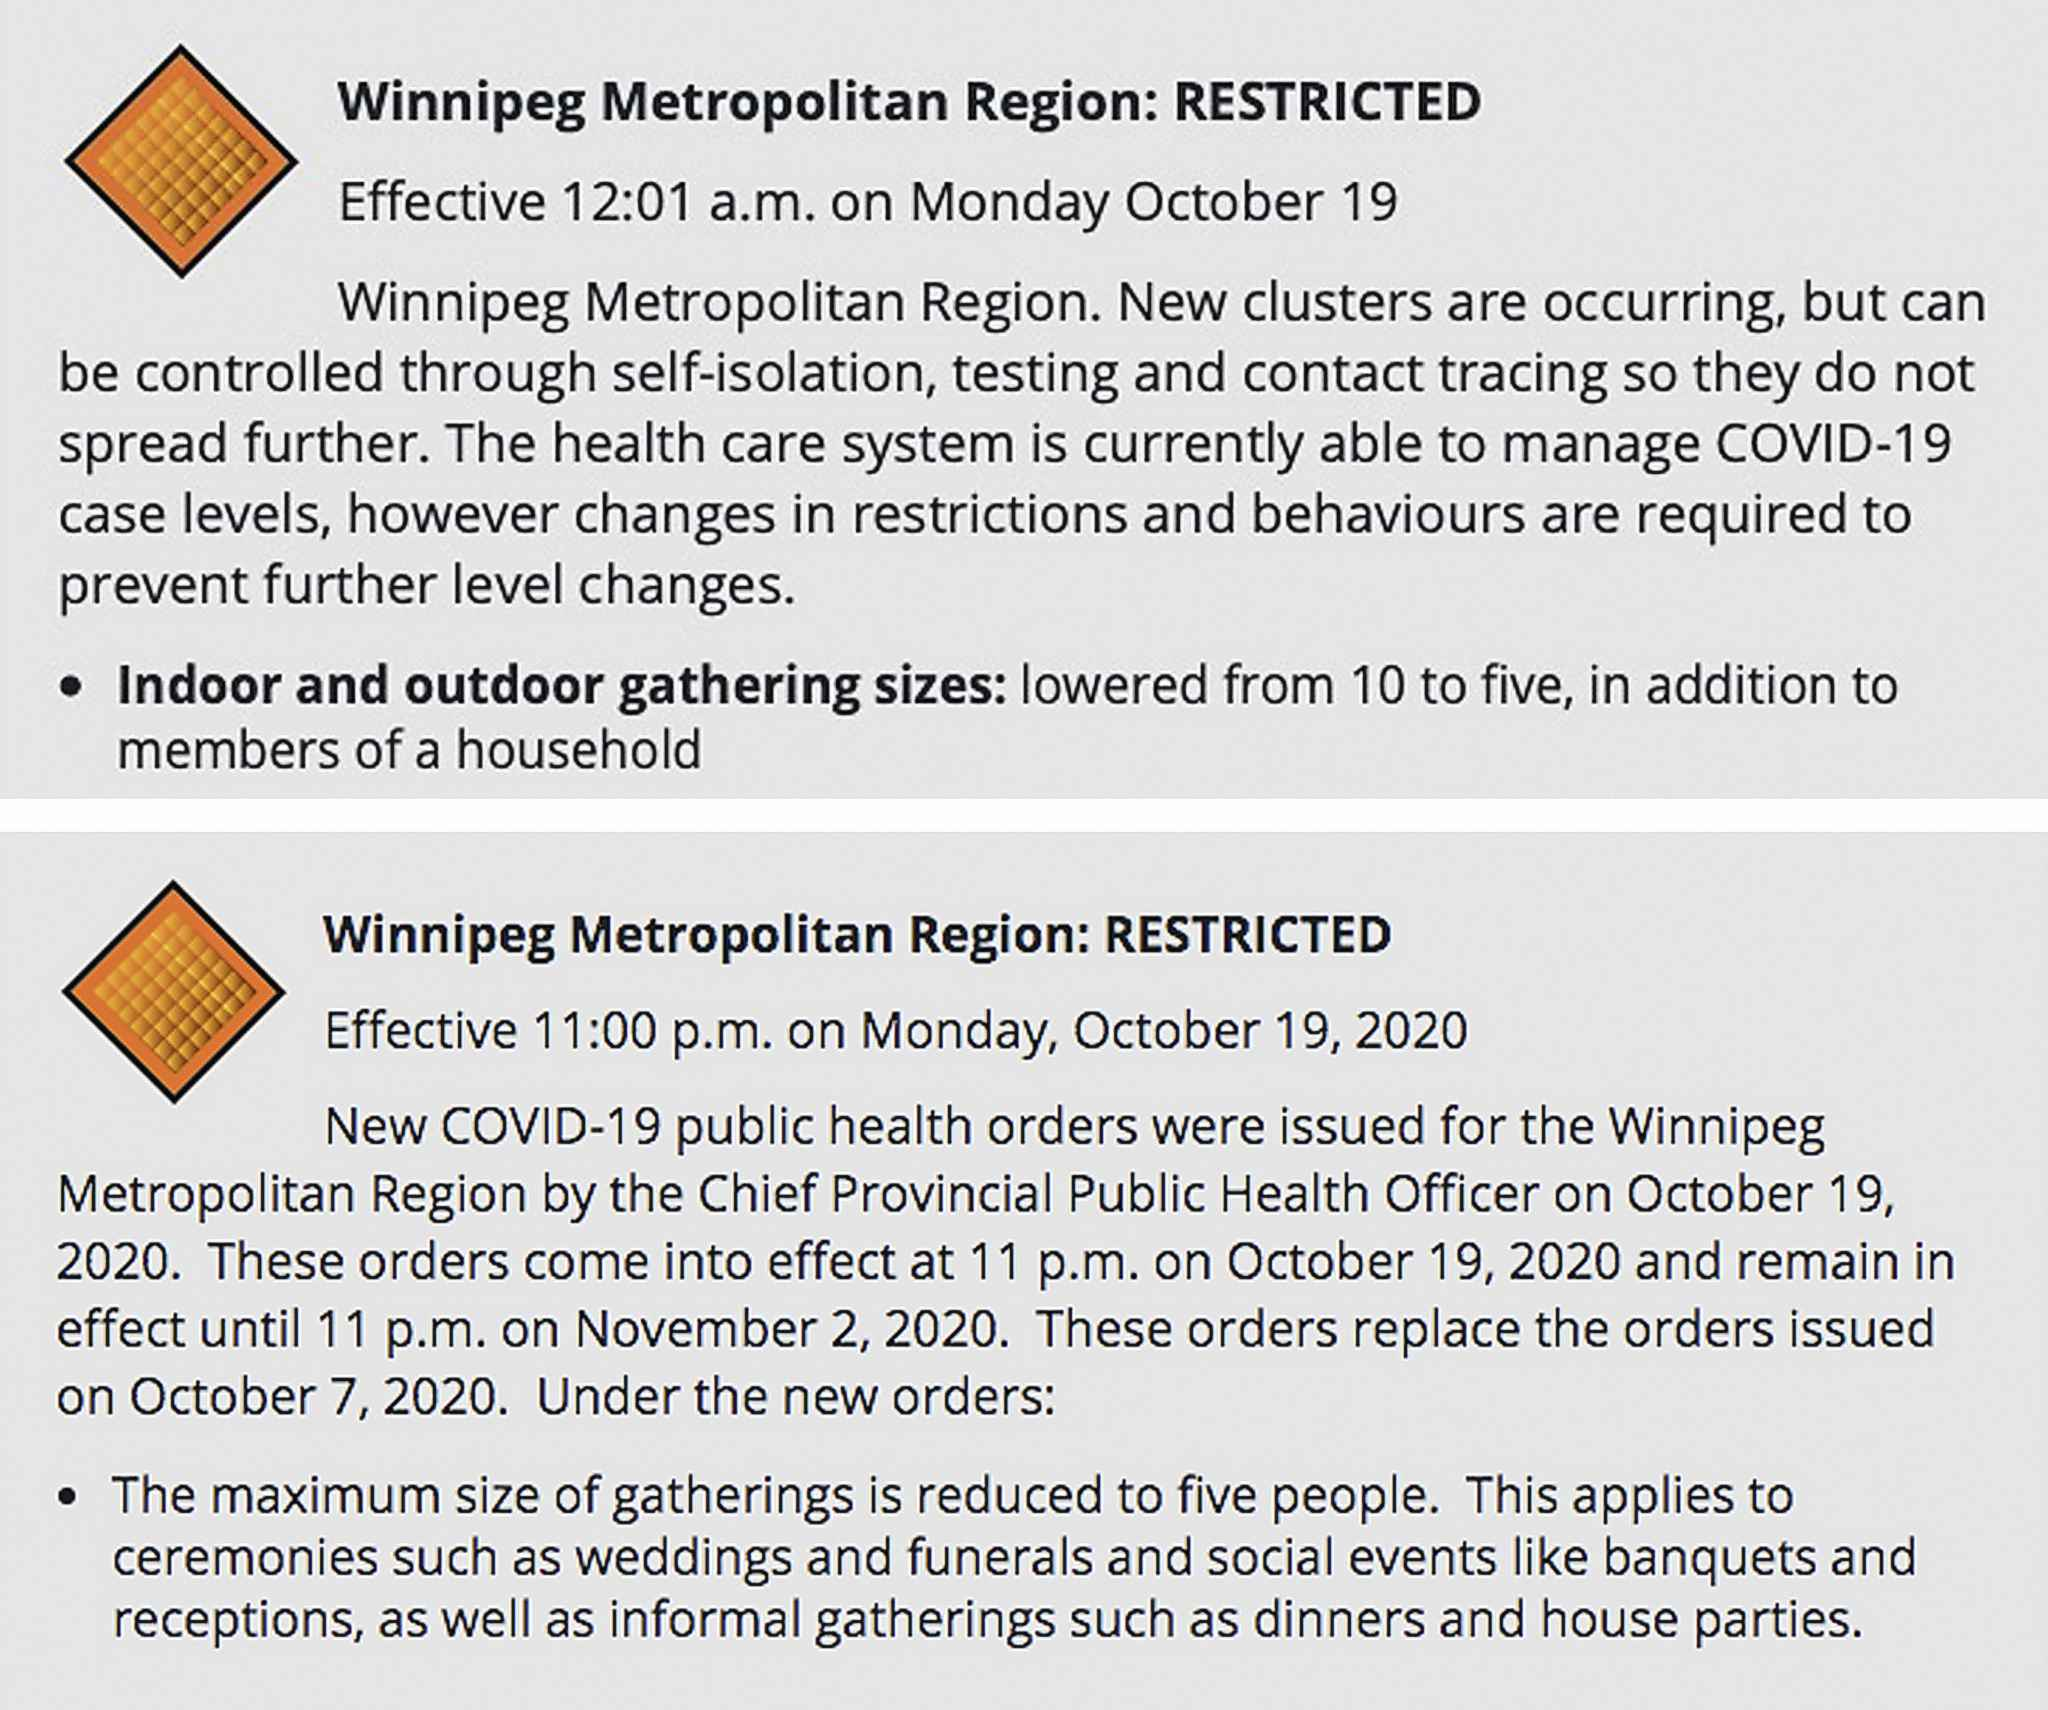 A screenshot of the Manitoba government's website on Friday, Oct. 17 (top) showing the restrictions take effect just after midnight Monday. On Tuesday, the same website showed the restrictions took effect Monday at 11 p.m. (bottom).